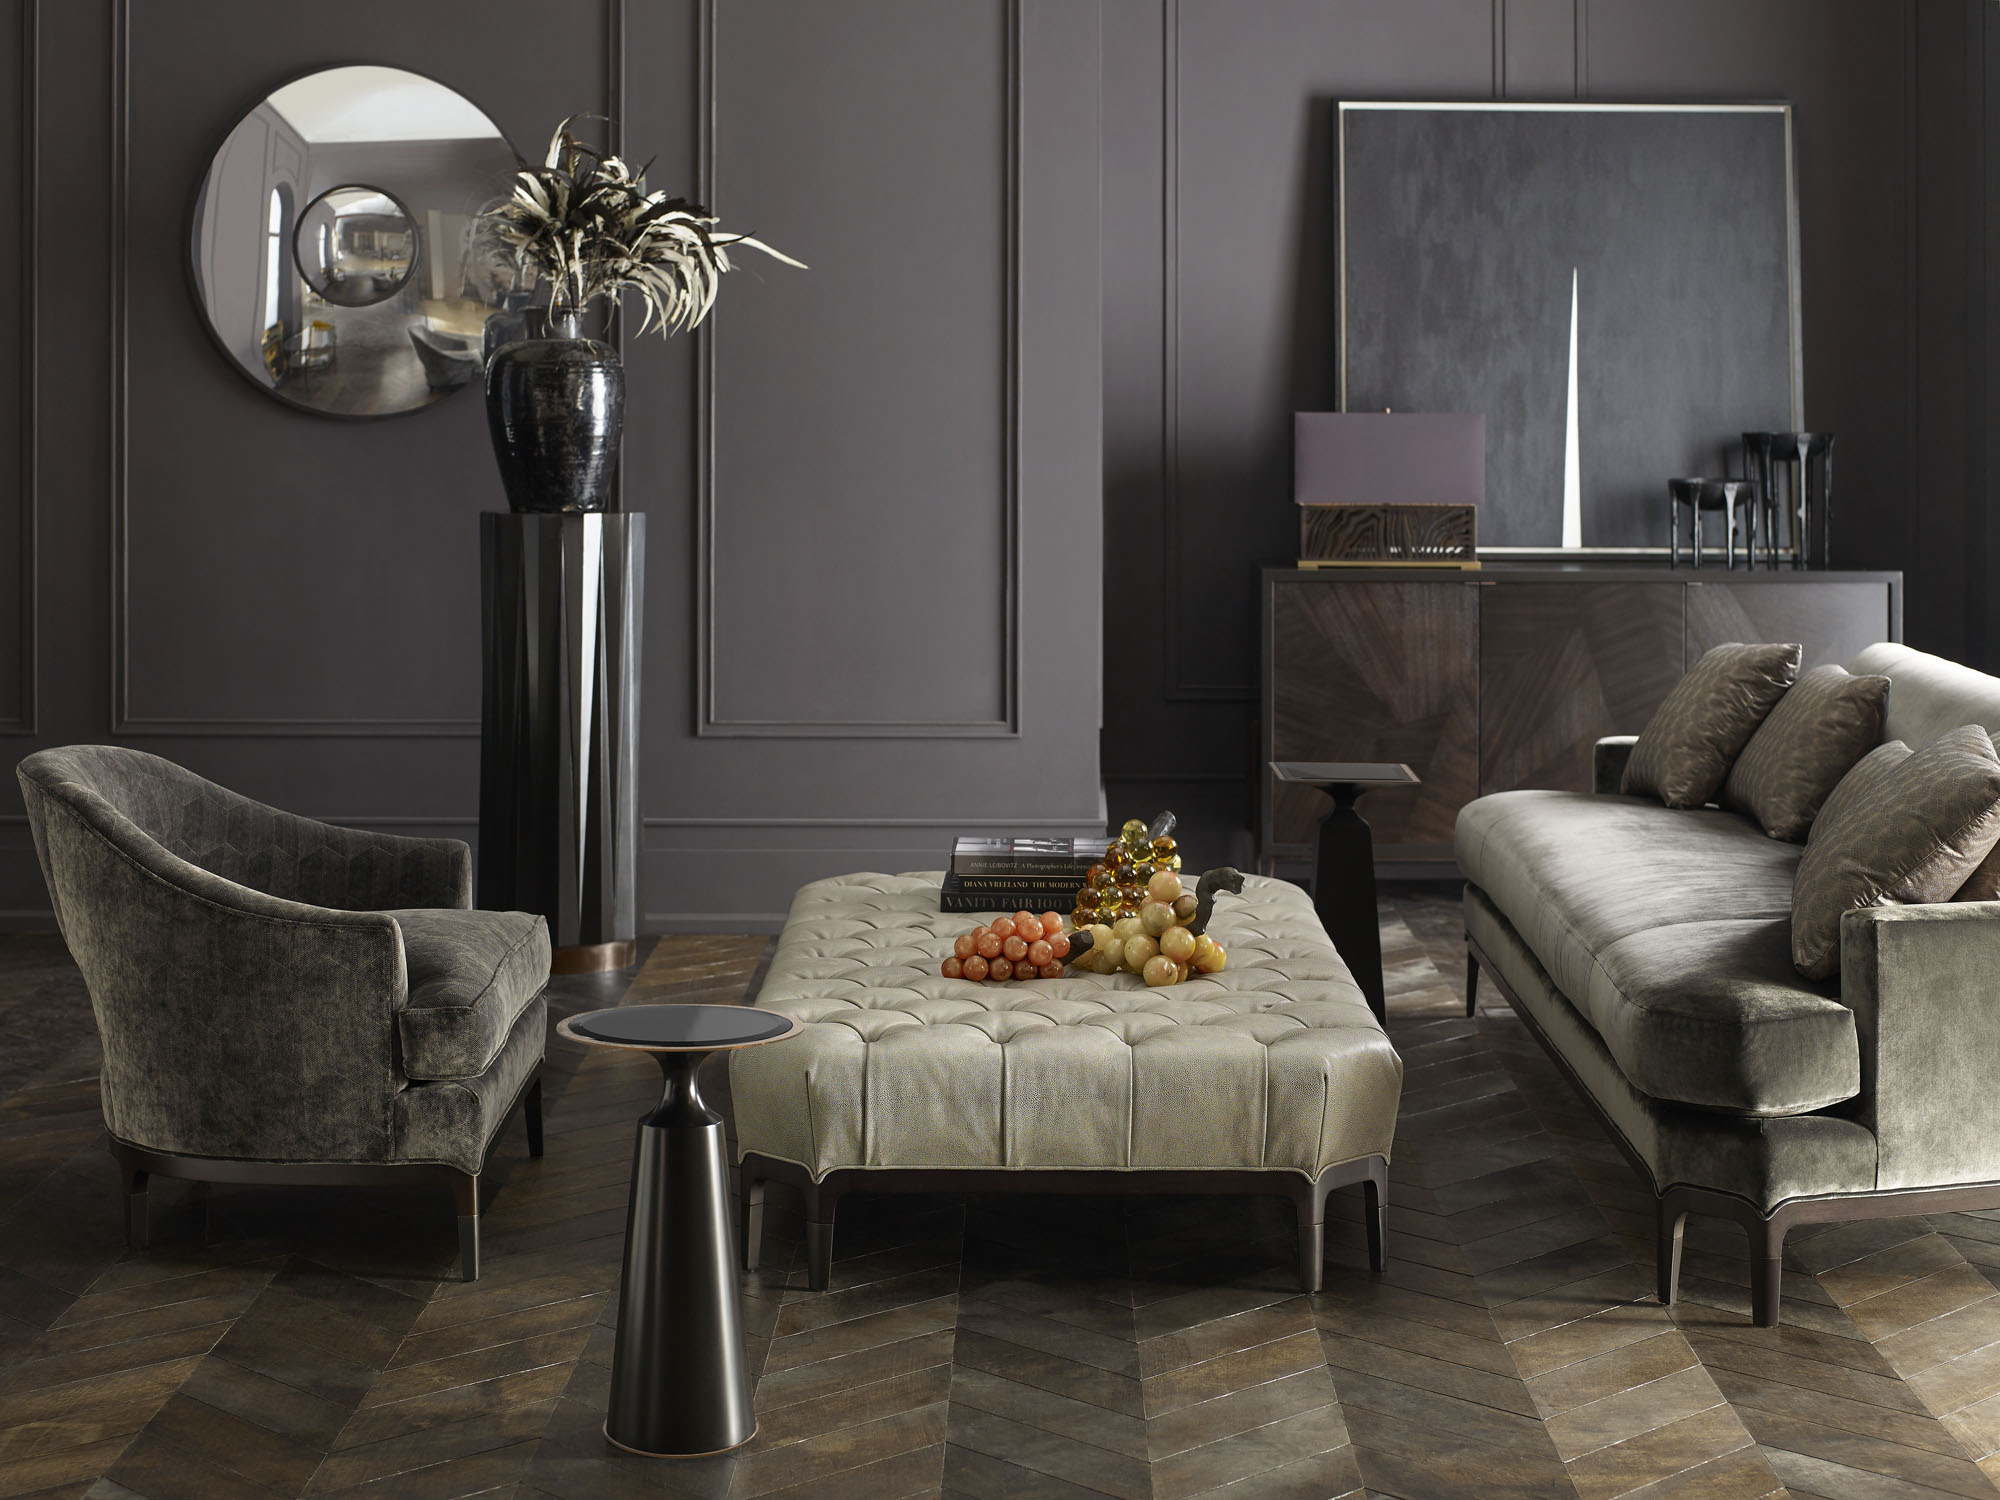 Gothic Home Decor Uk Baker Introduces The Jean Louis Deniot Collection Baker